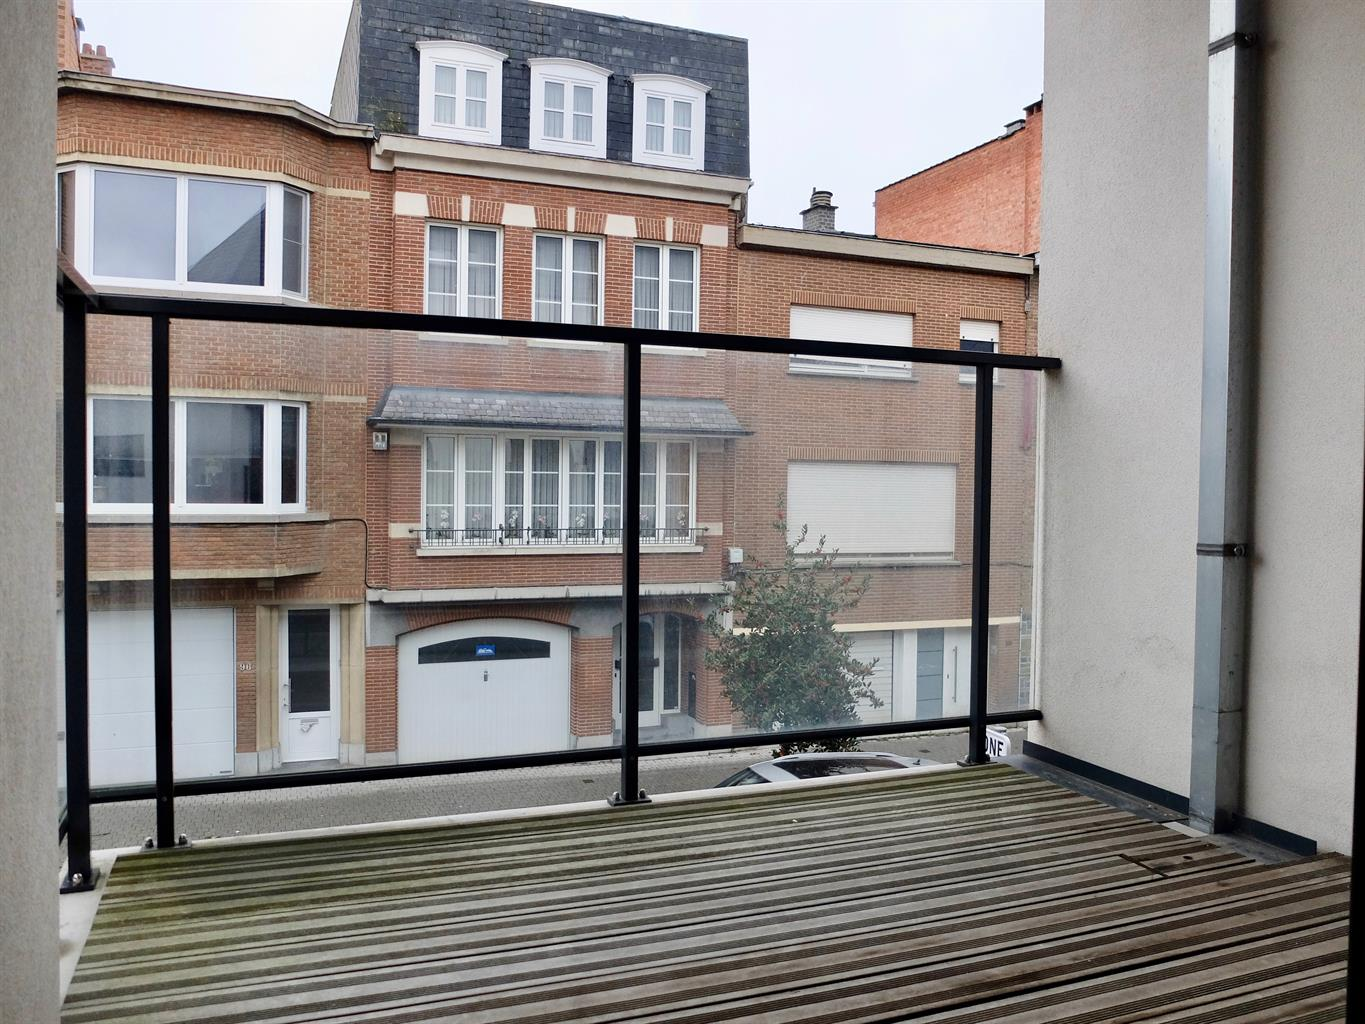 Appartement - Berchem-Sainte-Agathe - #3924397-5